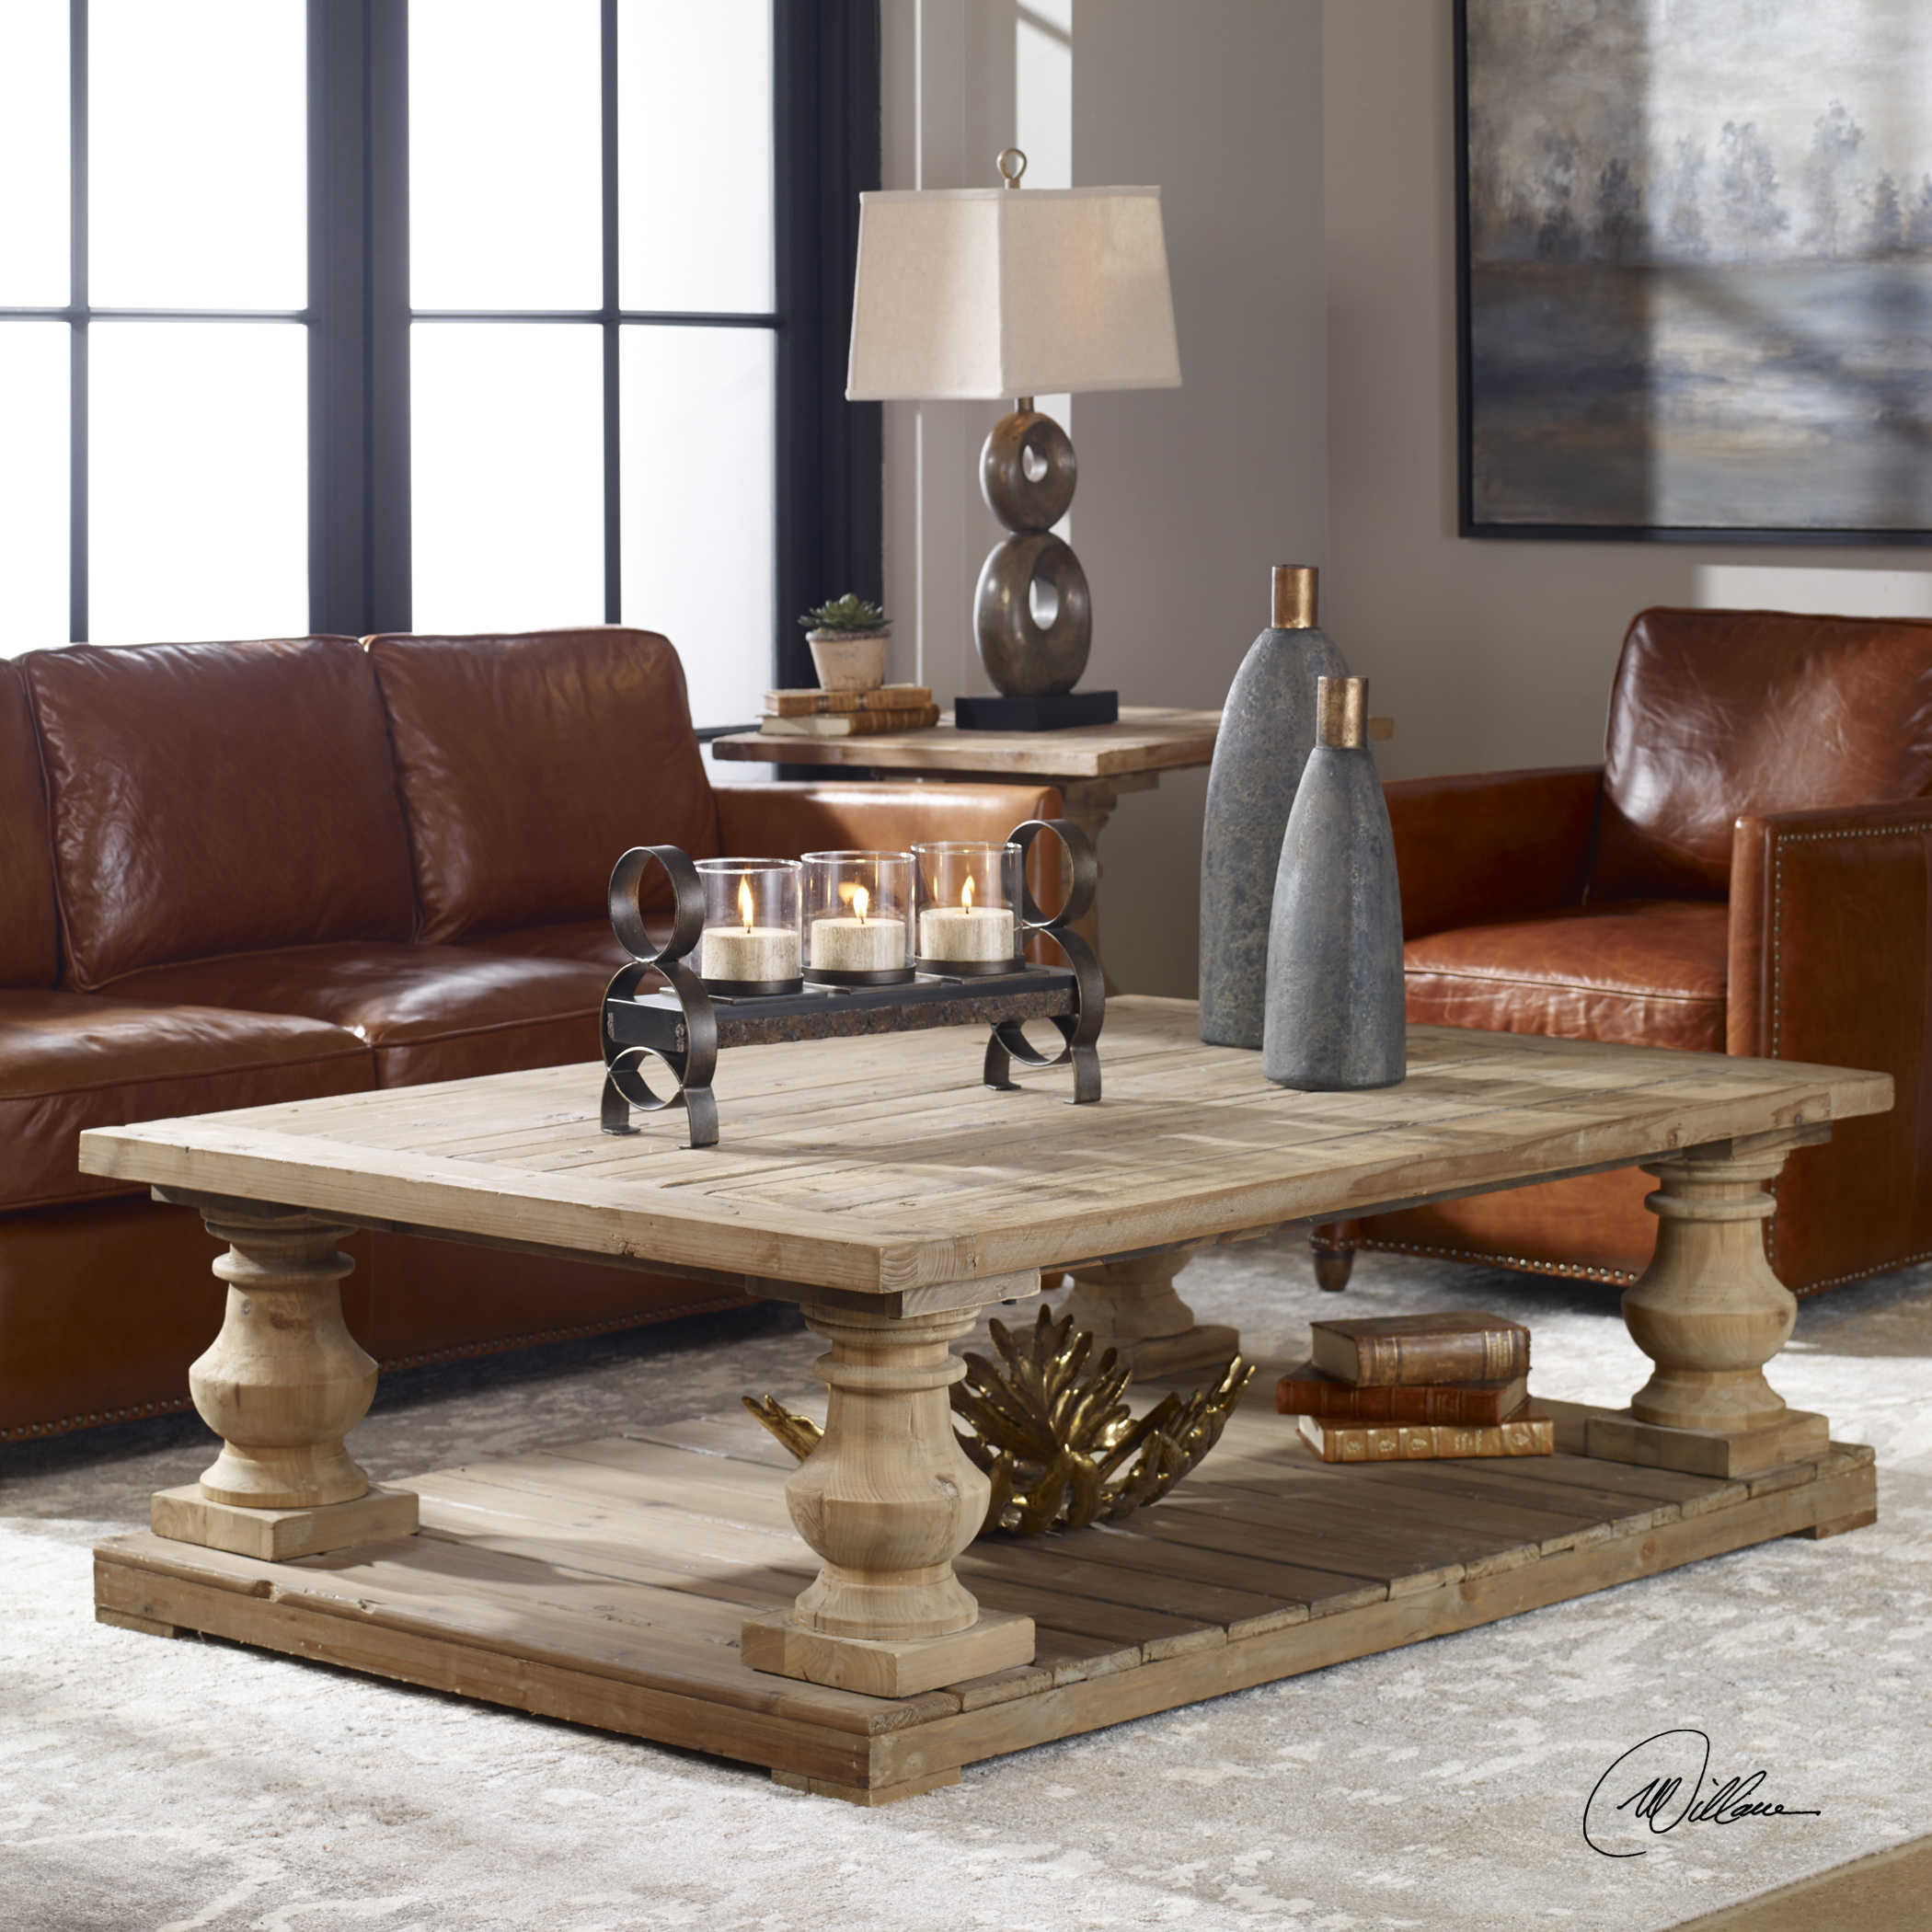 Uttermost Stratford Rustic Cocktail Table pertaining to sizing 2100 X 2100